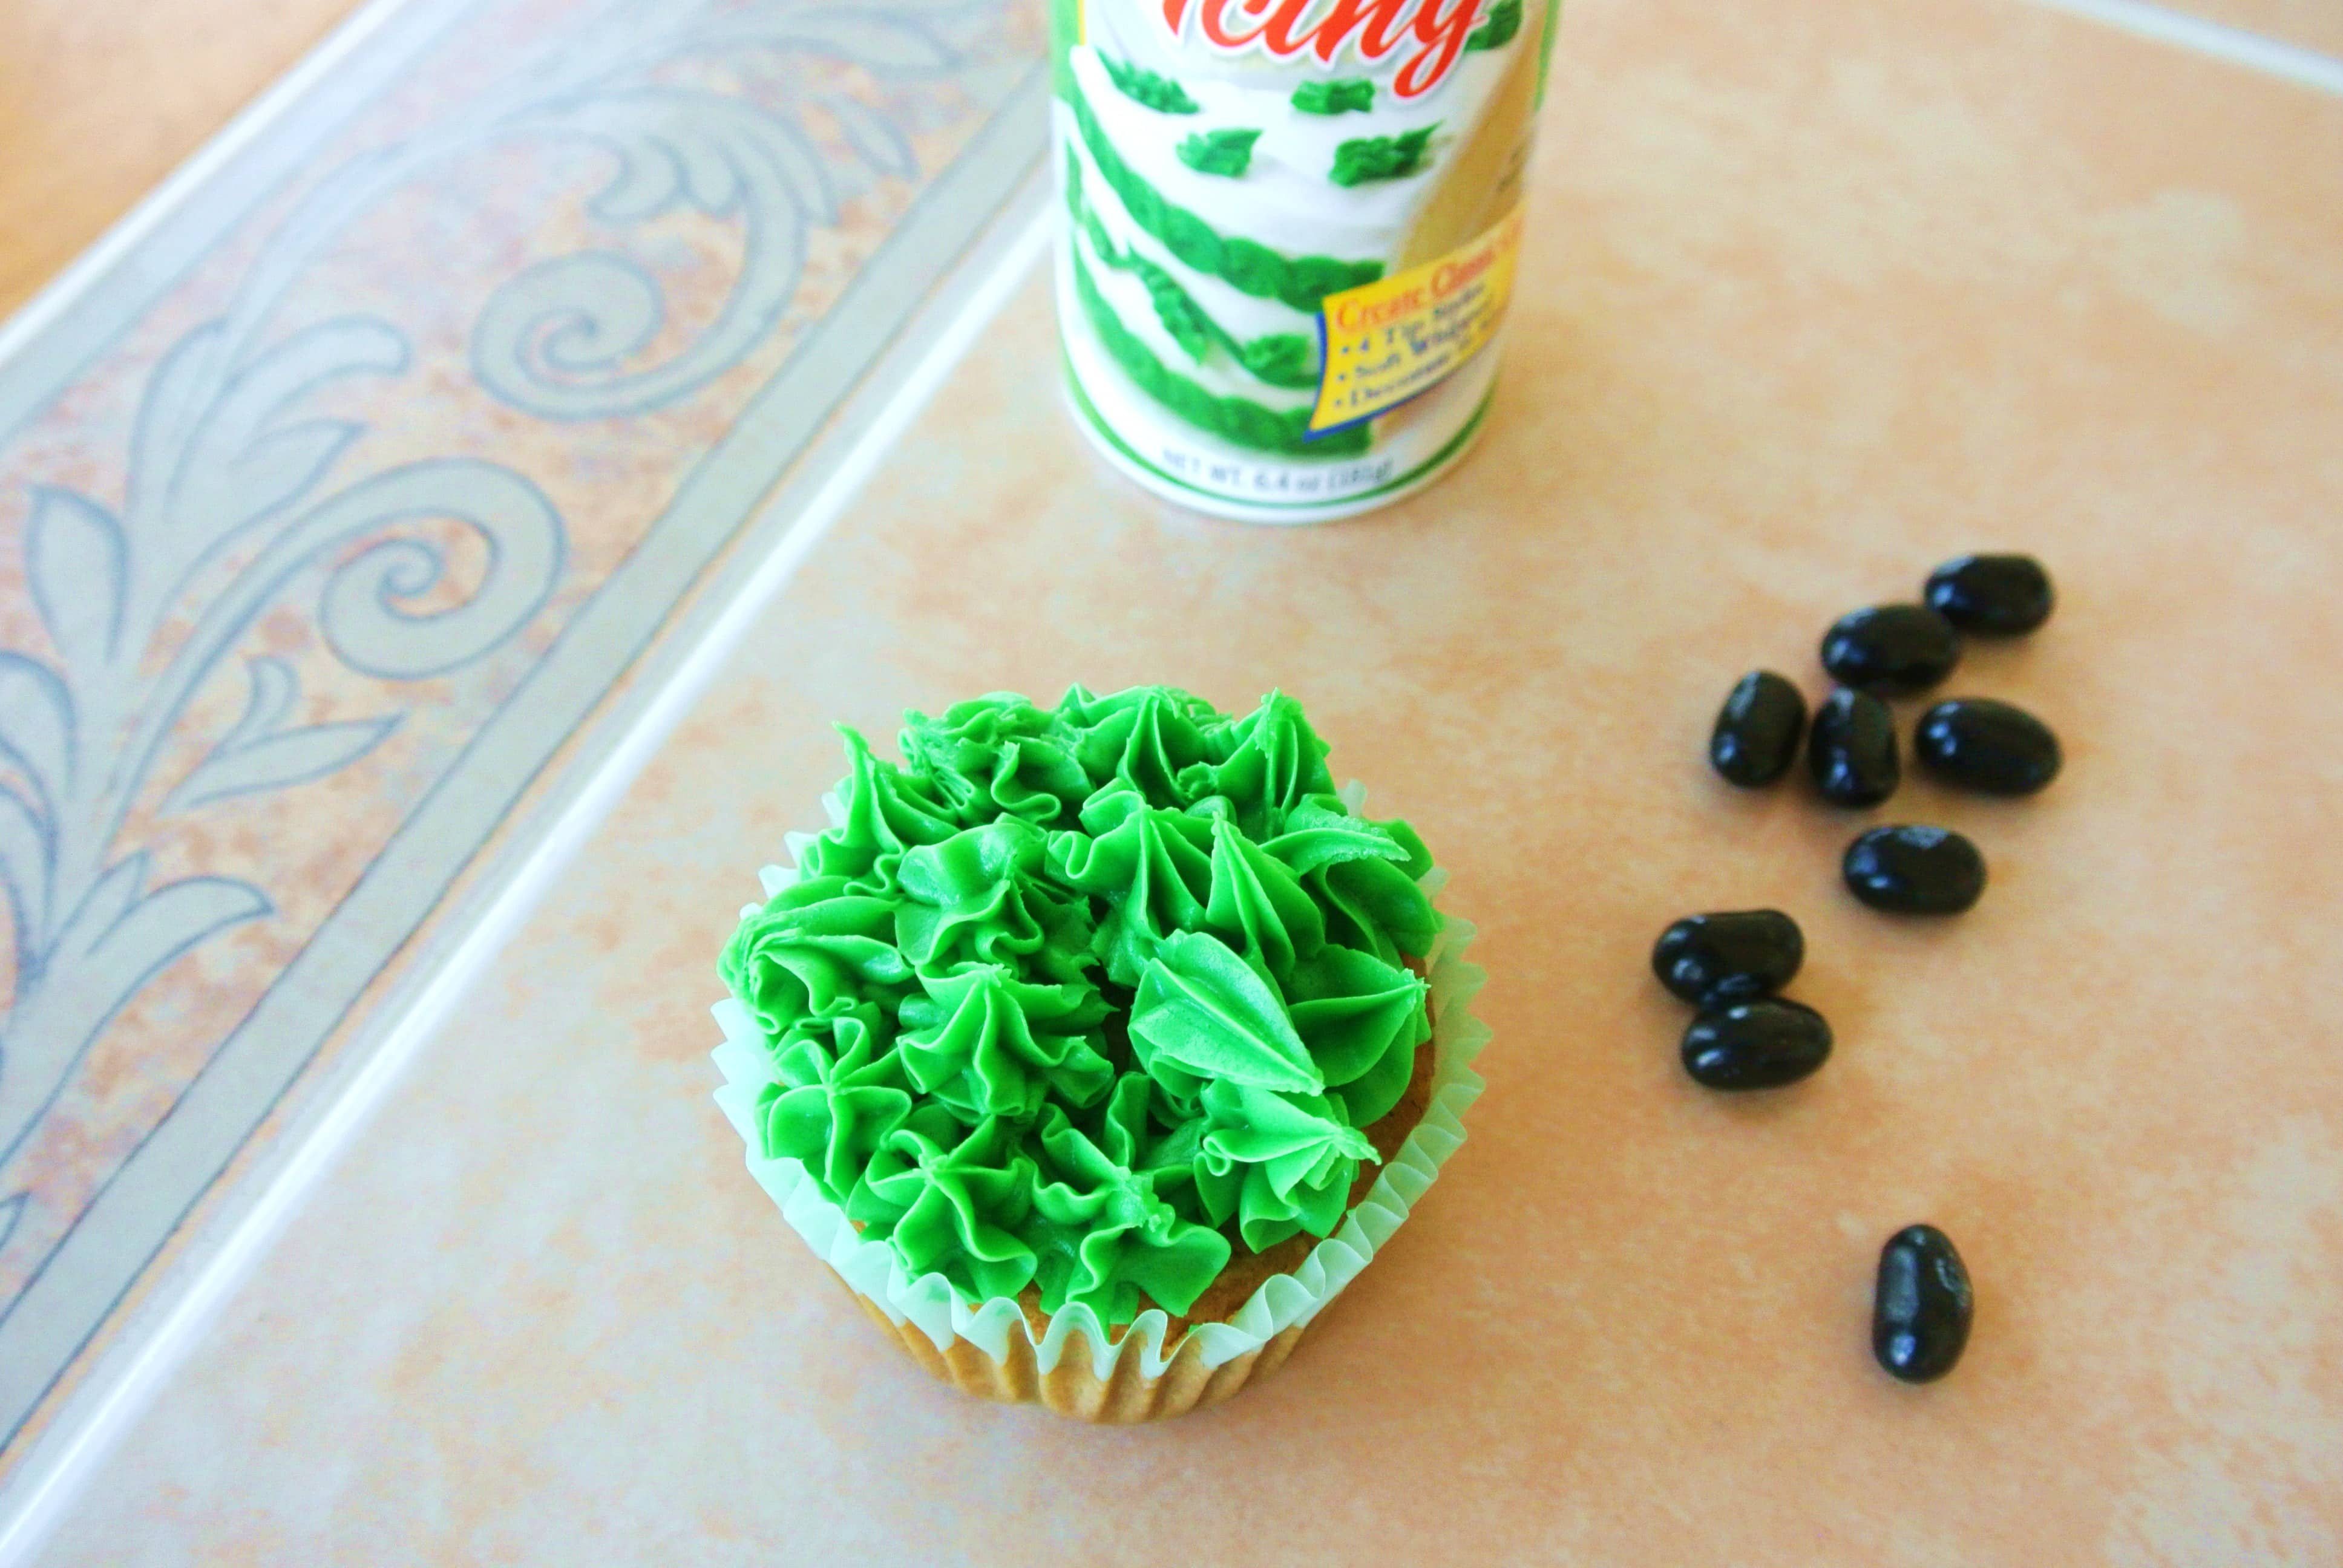 Decorating Bunny Poop Cupcakes with green icing and black jelly beans